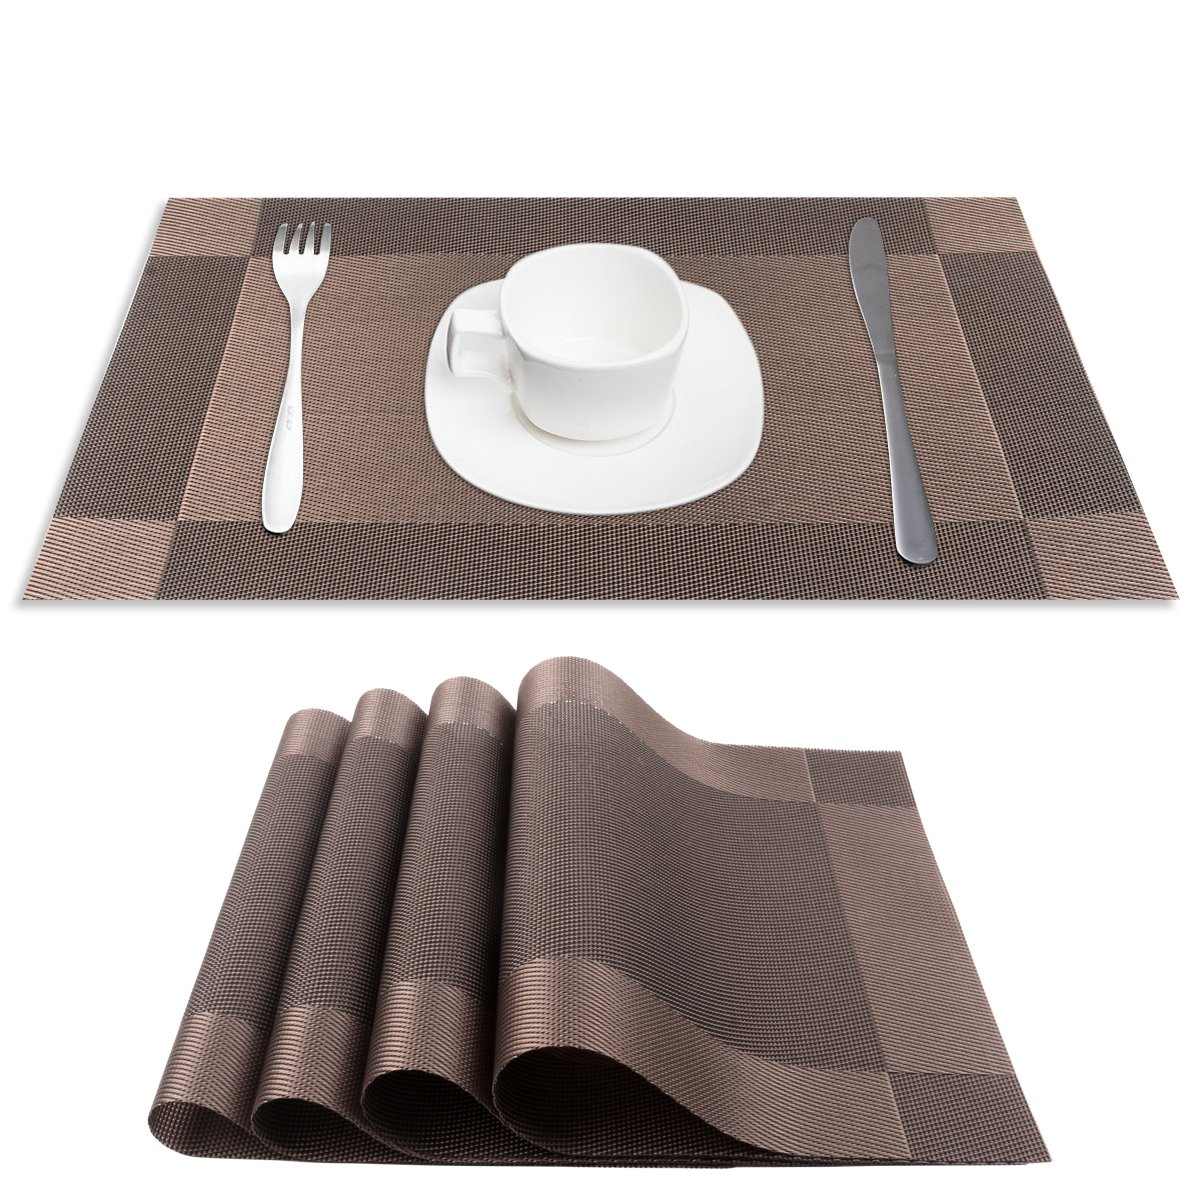 PVC Place Mats, CSYS Heat Insulation PVC Placemats Stain Kitchen Tool Tableware Pad Coaster Coffee Tea Place Mat Decorative Vinyl Placemats for Dining Table (Blown)